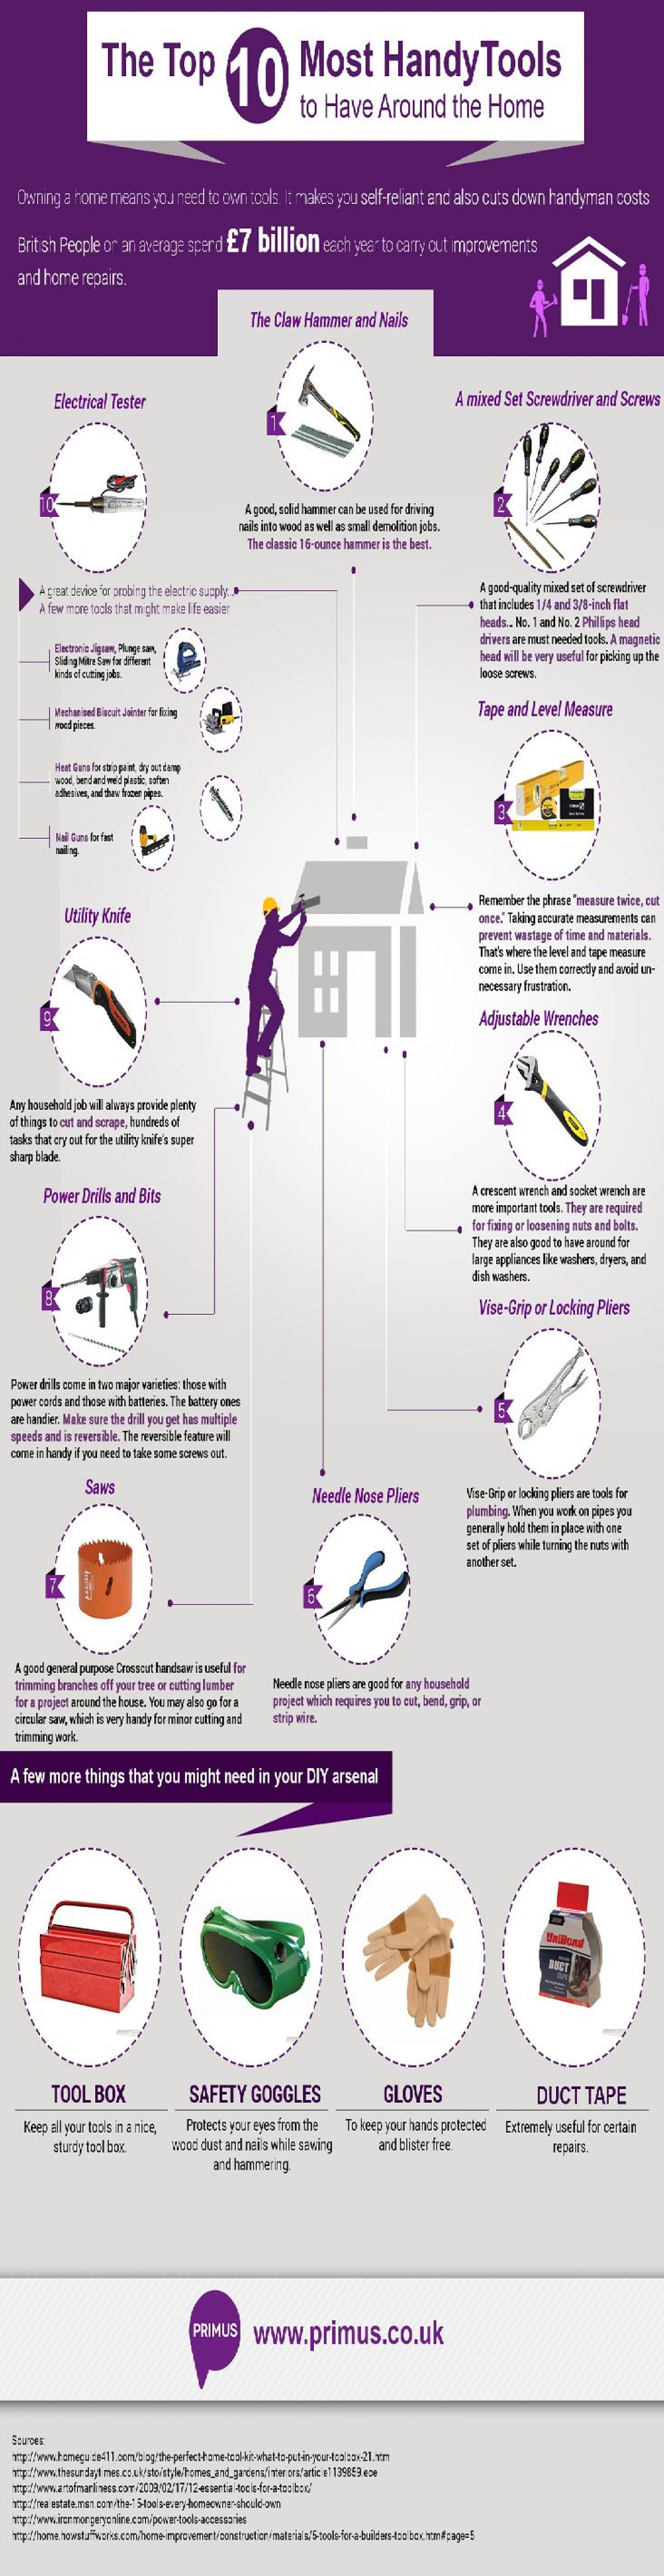 The Top 10 Most Handy Tools to Have Around the Home Infographic